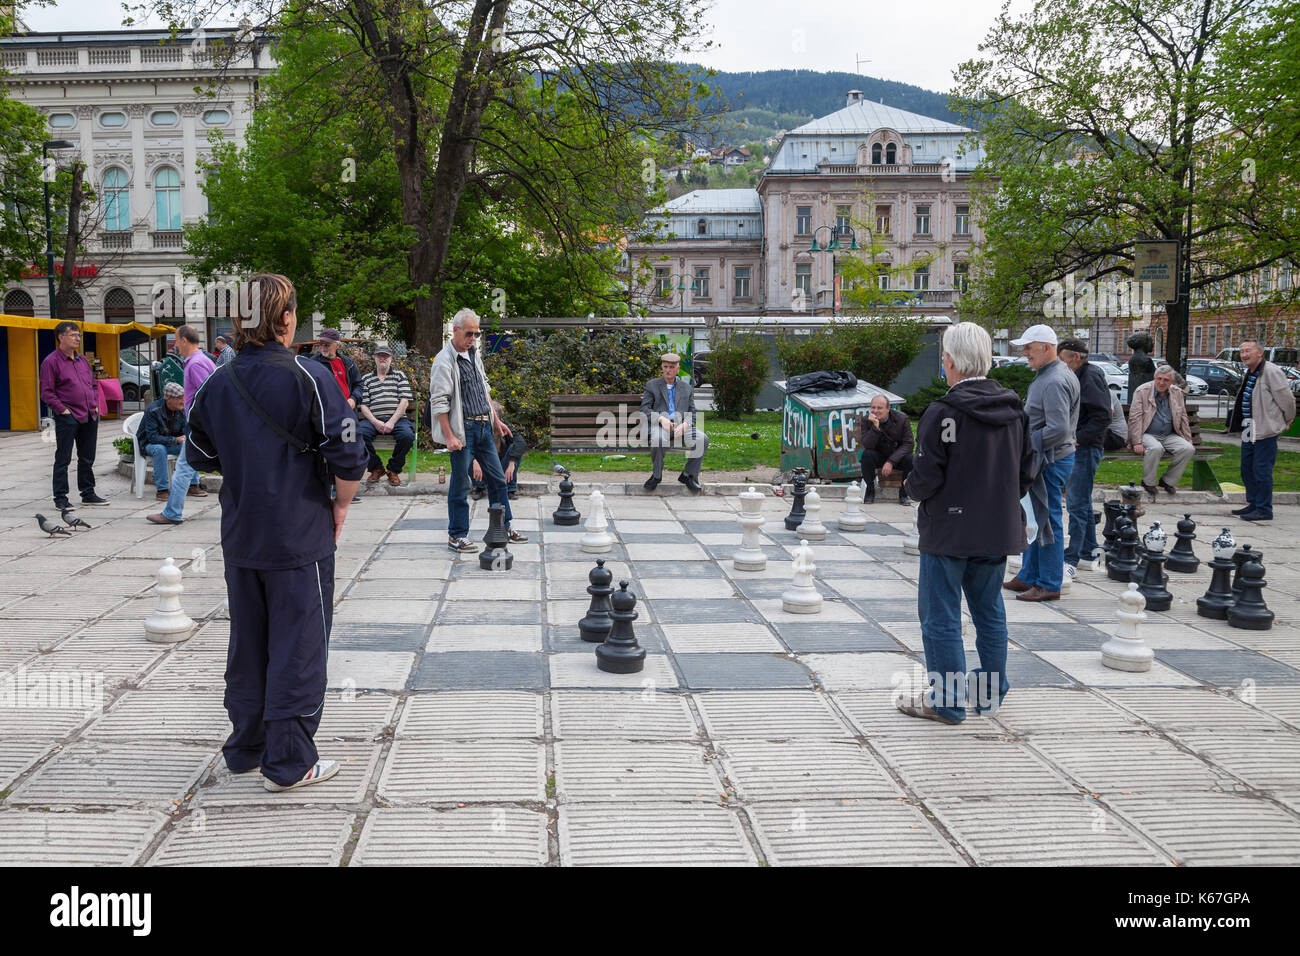 SARAJEVO, BOSNIA AND HERZEGOVINA - APRIL 15, 2017: Old men playing a giant chess game in the city center of Sarajevo, capital city of Bosnia. This che - Stock Image